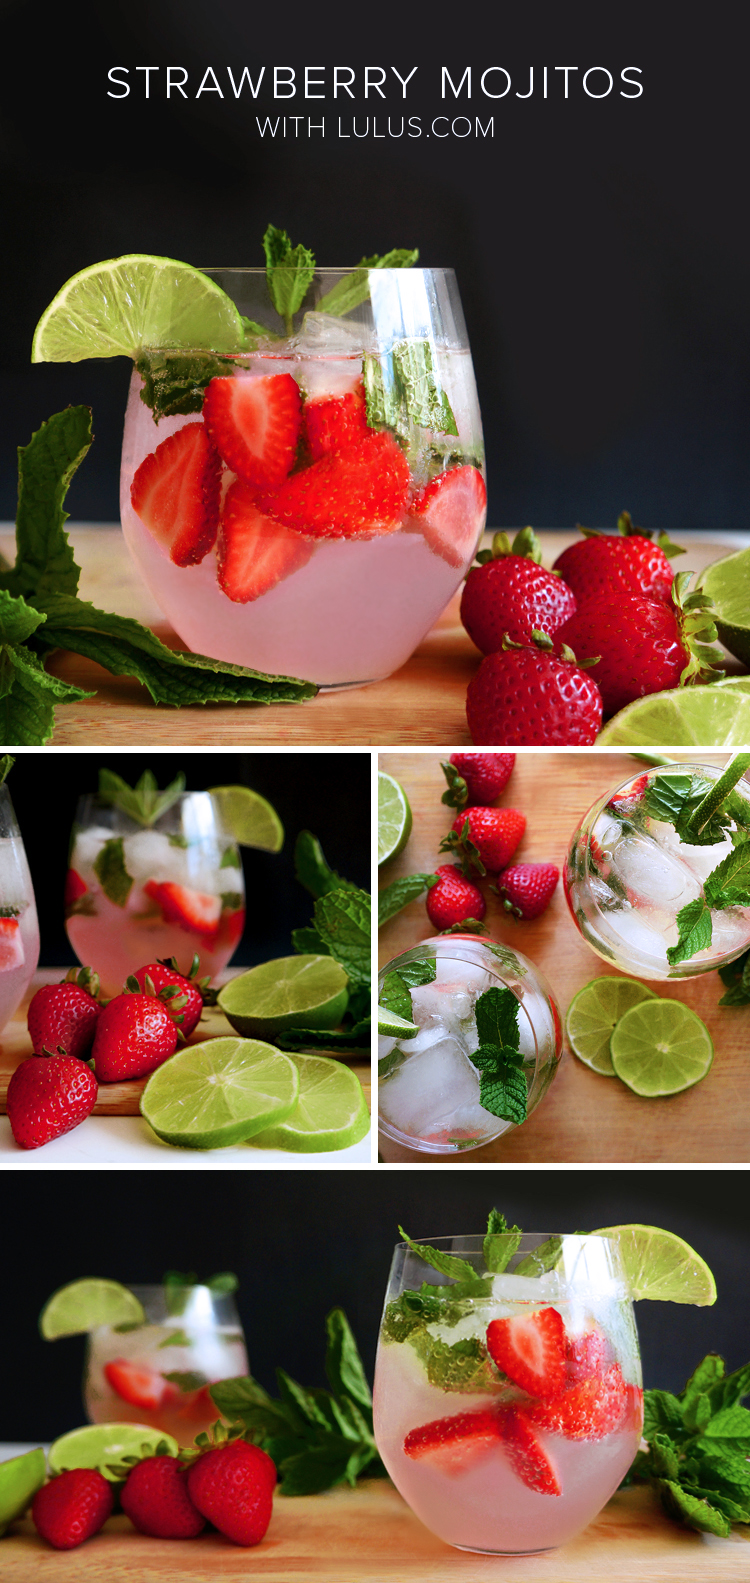 StrawberryMojito2